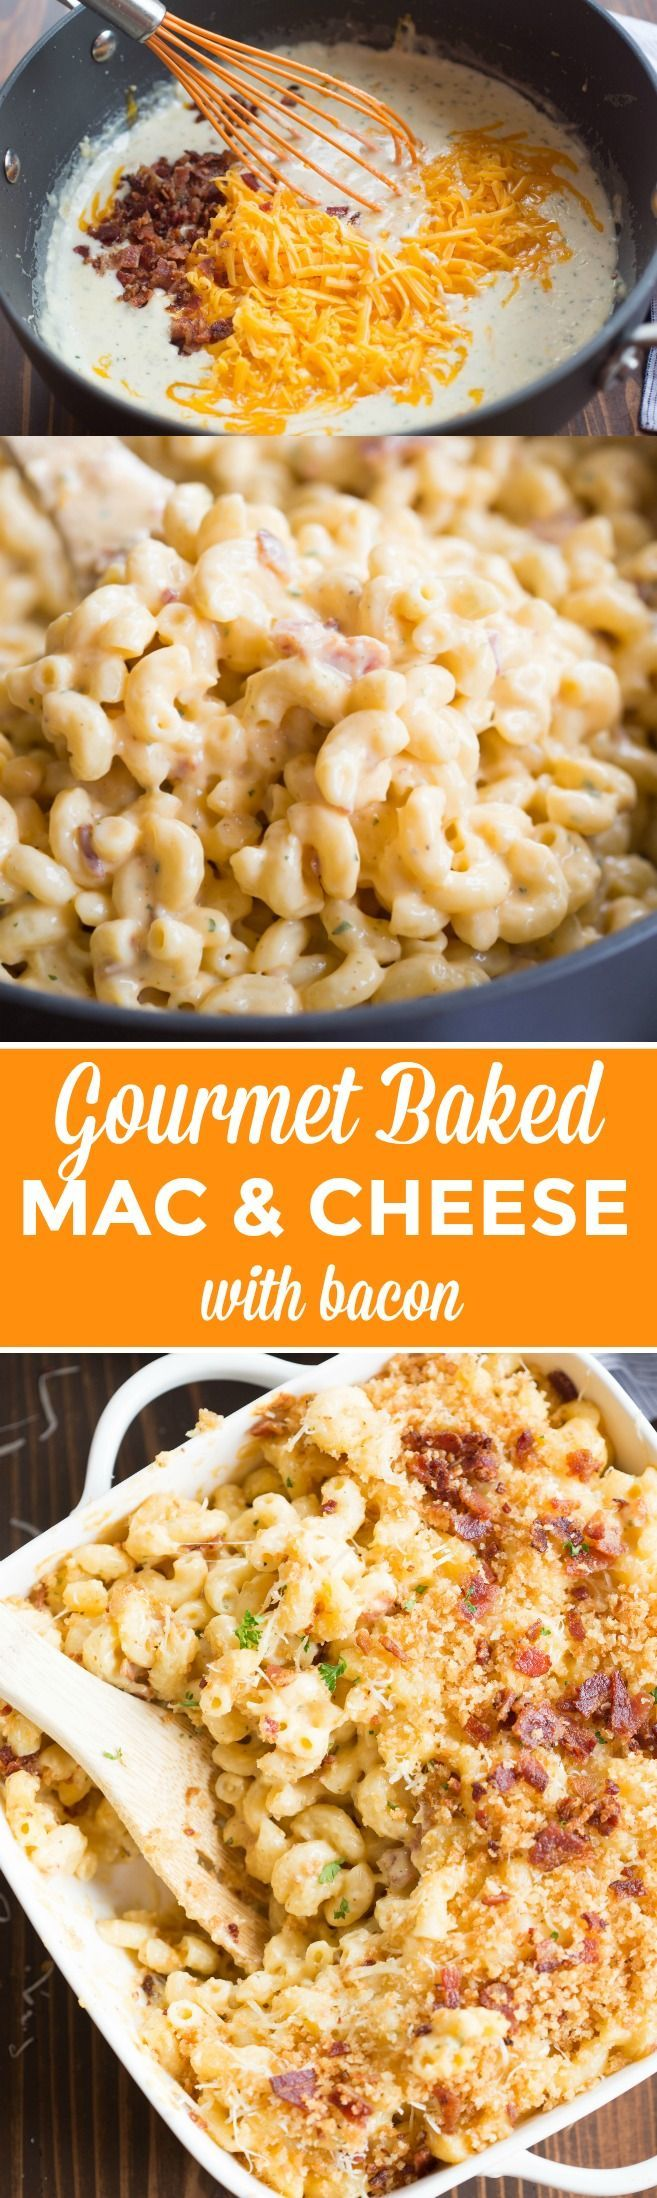 This Creamy Cheesy Gourmet Baked Mac And Cheese With Bacon Will Outshine Any Mac